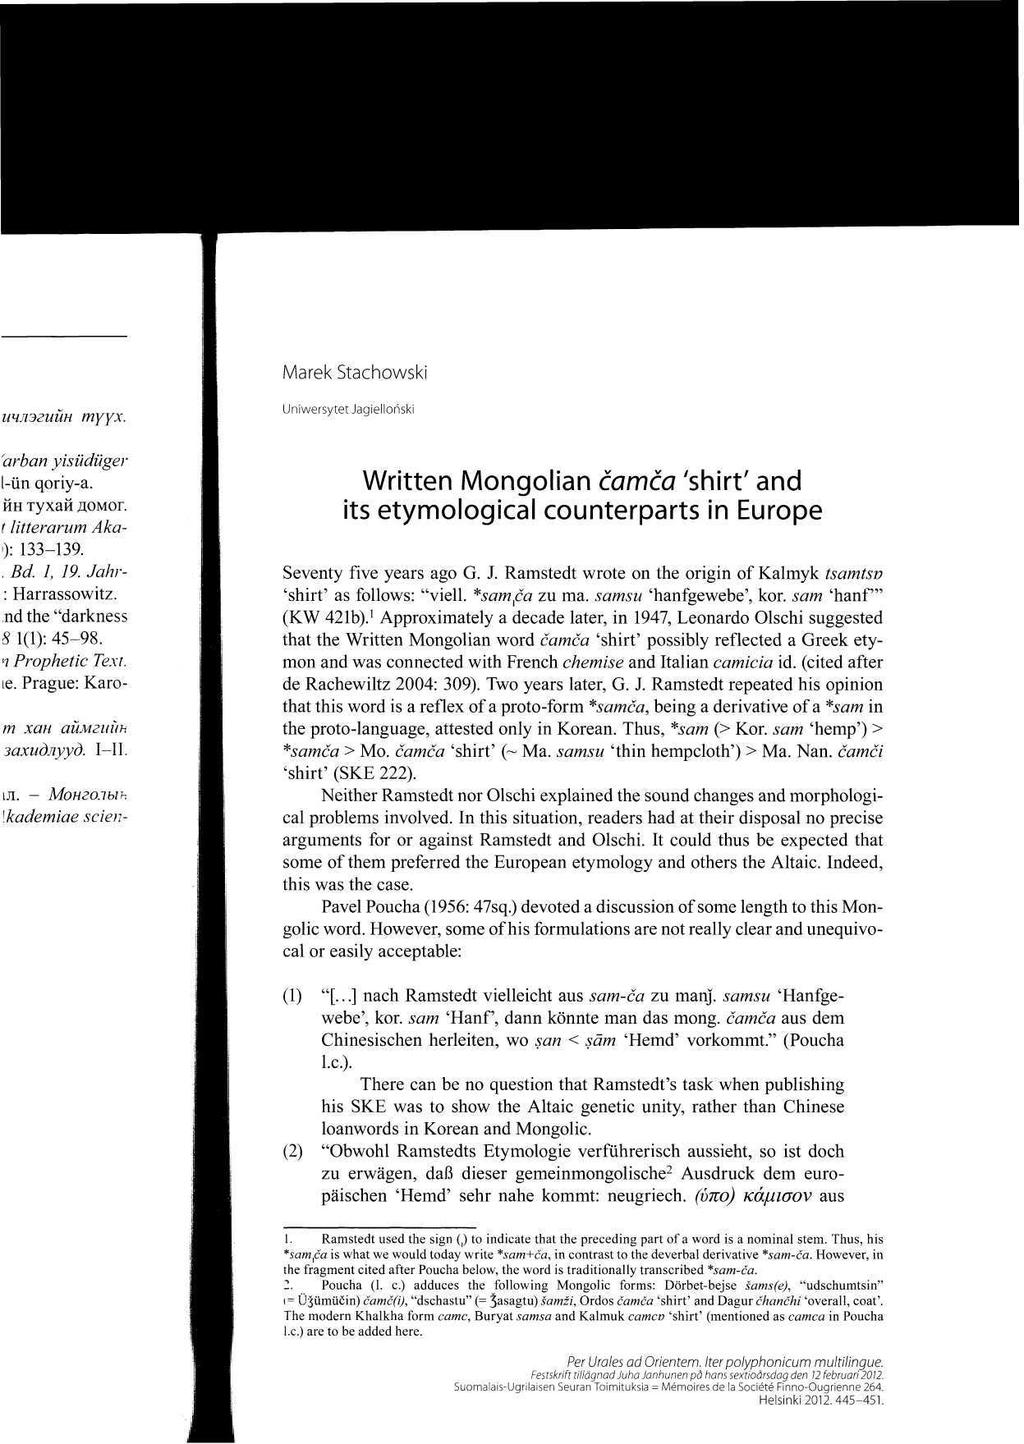 "Marek Stachowski Uniwersytet Jagiellohski Written Mongolian camca 'shirt' and its etymological counterparts in Europe Seventy five years ago G. J. Ramstedt wrote on the origin of Kalmyk tsamtsv 'shirt' as follows: ""viell."